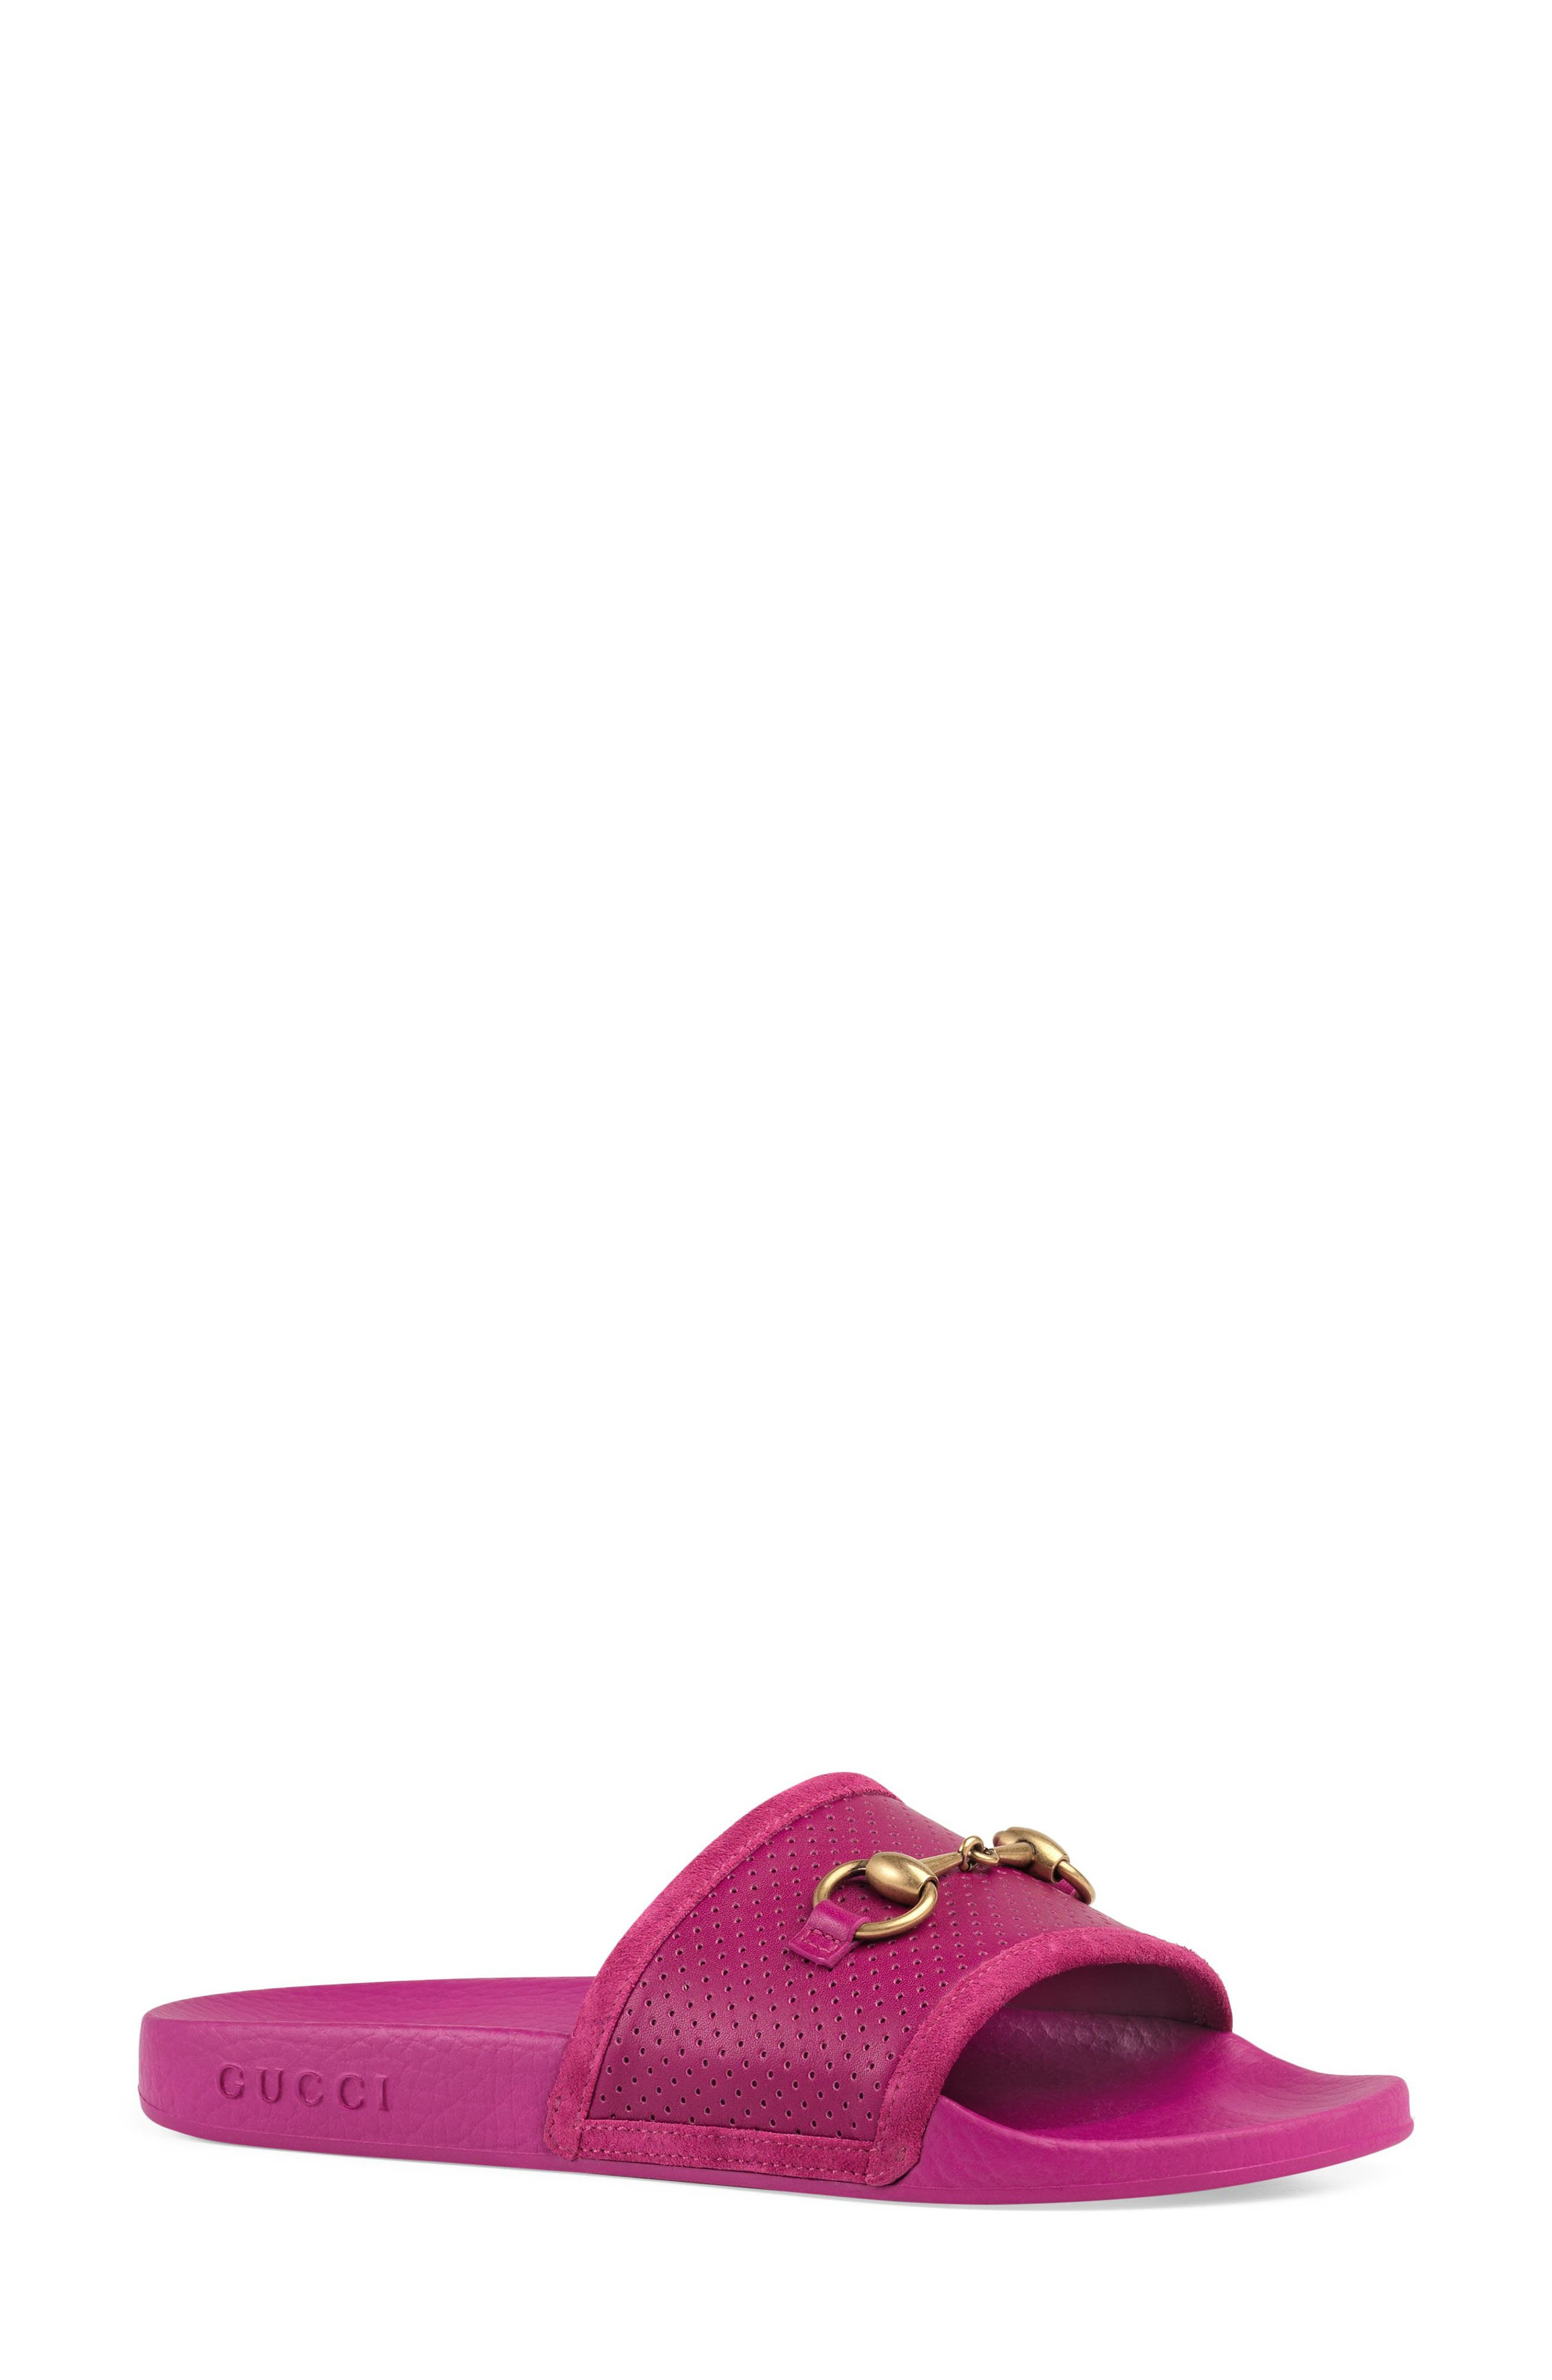 Horsebit Slide Sandal,                         Main,                         color, Dark Pink